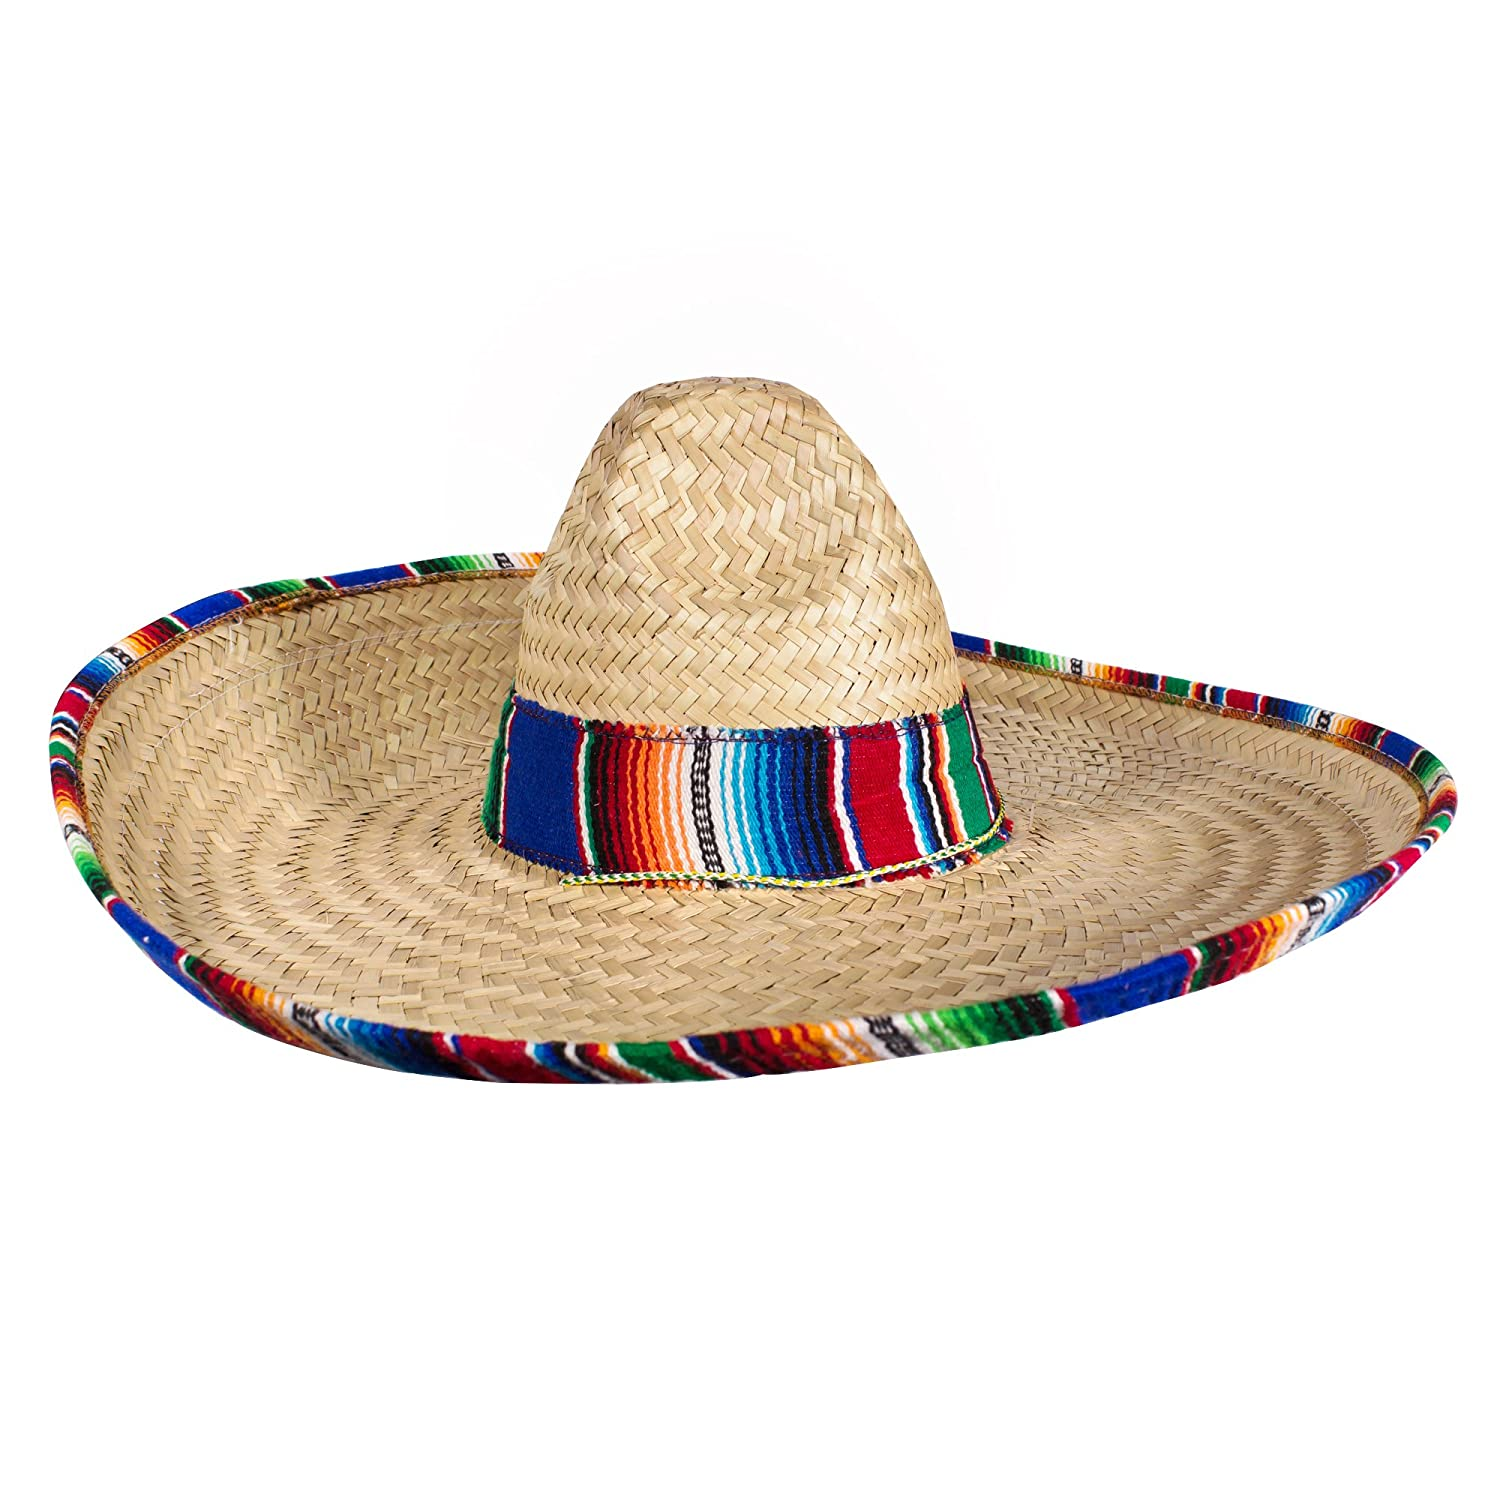 rebajas outlet en pies imágenes de unos dias Authentic Sombrero Straw Hat with Serape Trim - Cinco De Mayo Fiesta Party  - Made in Mexico